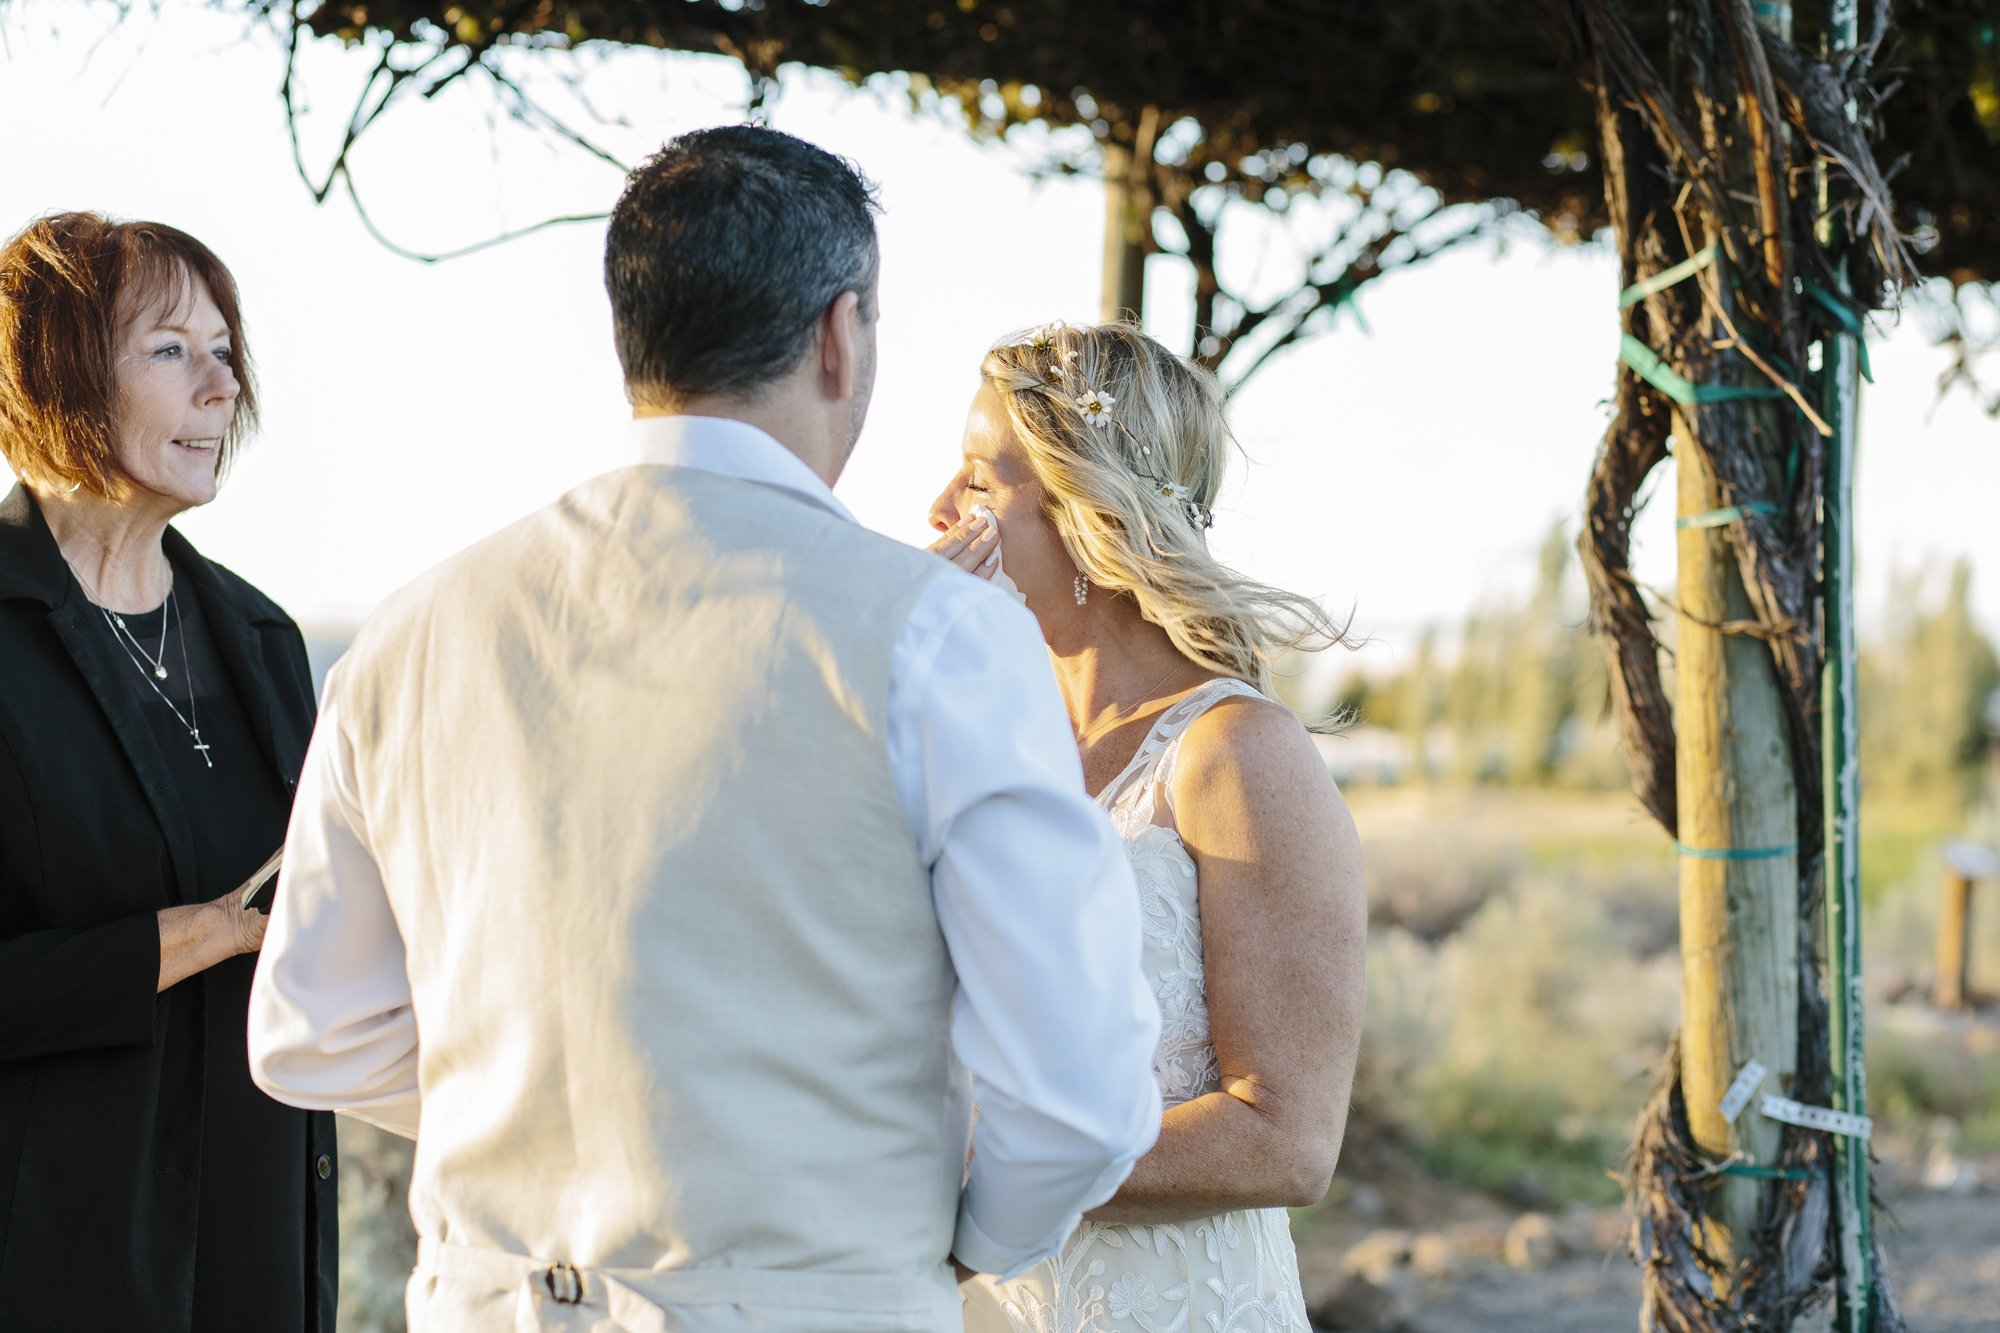 Eastern Washington Elopement Photographer // Emily Wenzel Photography